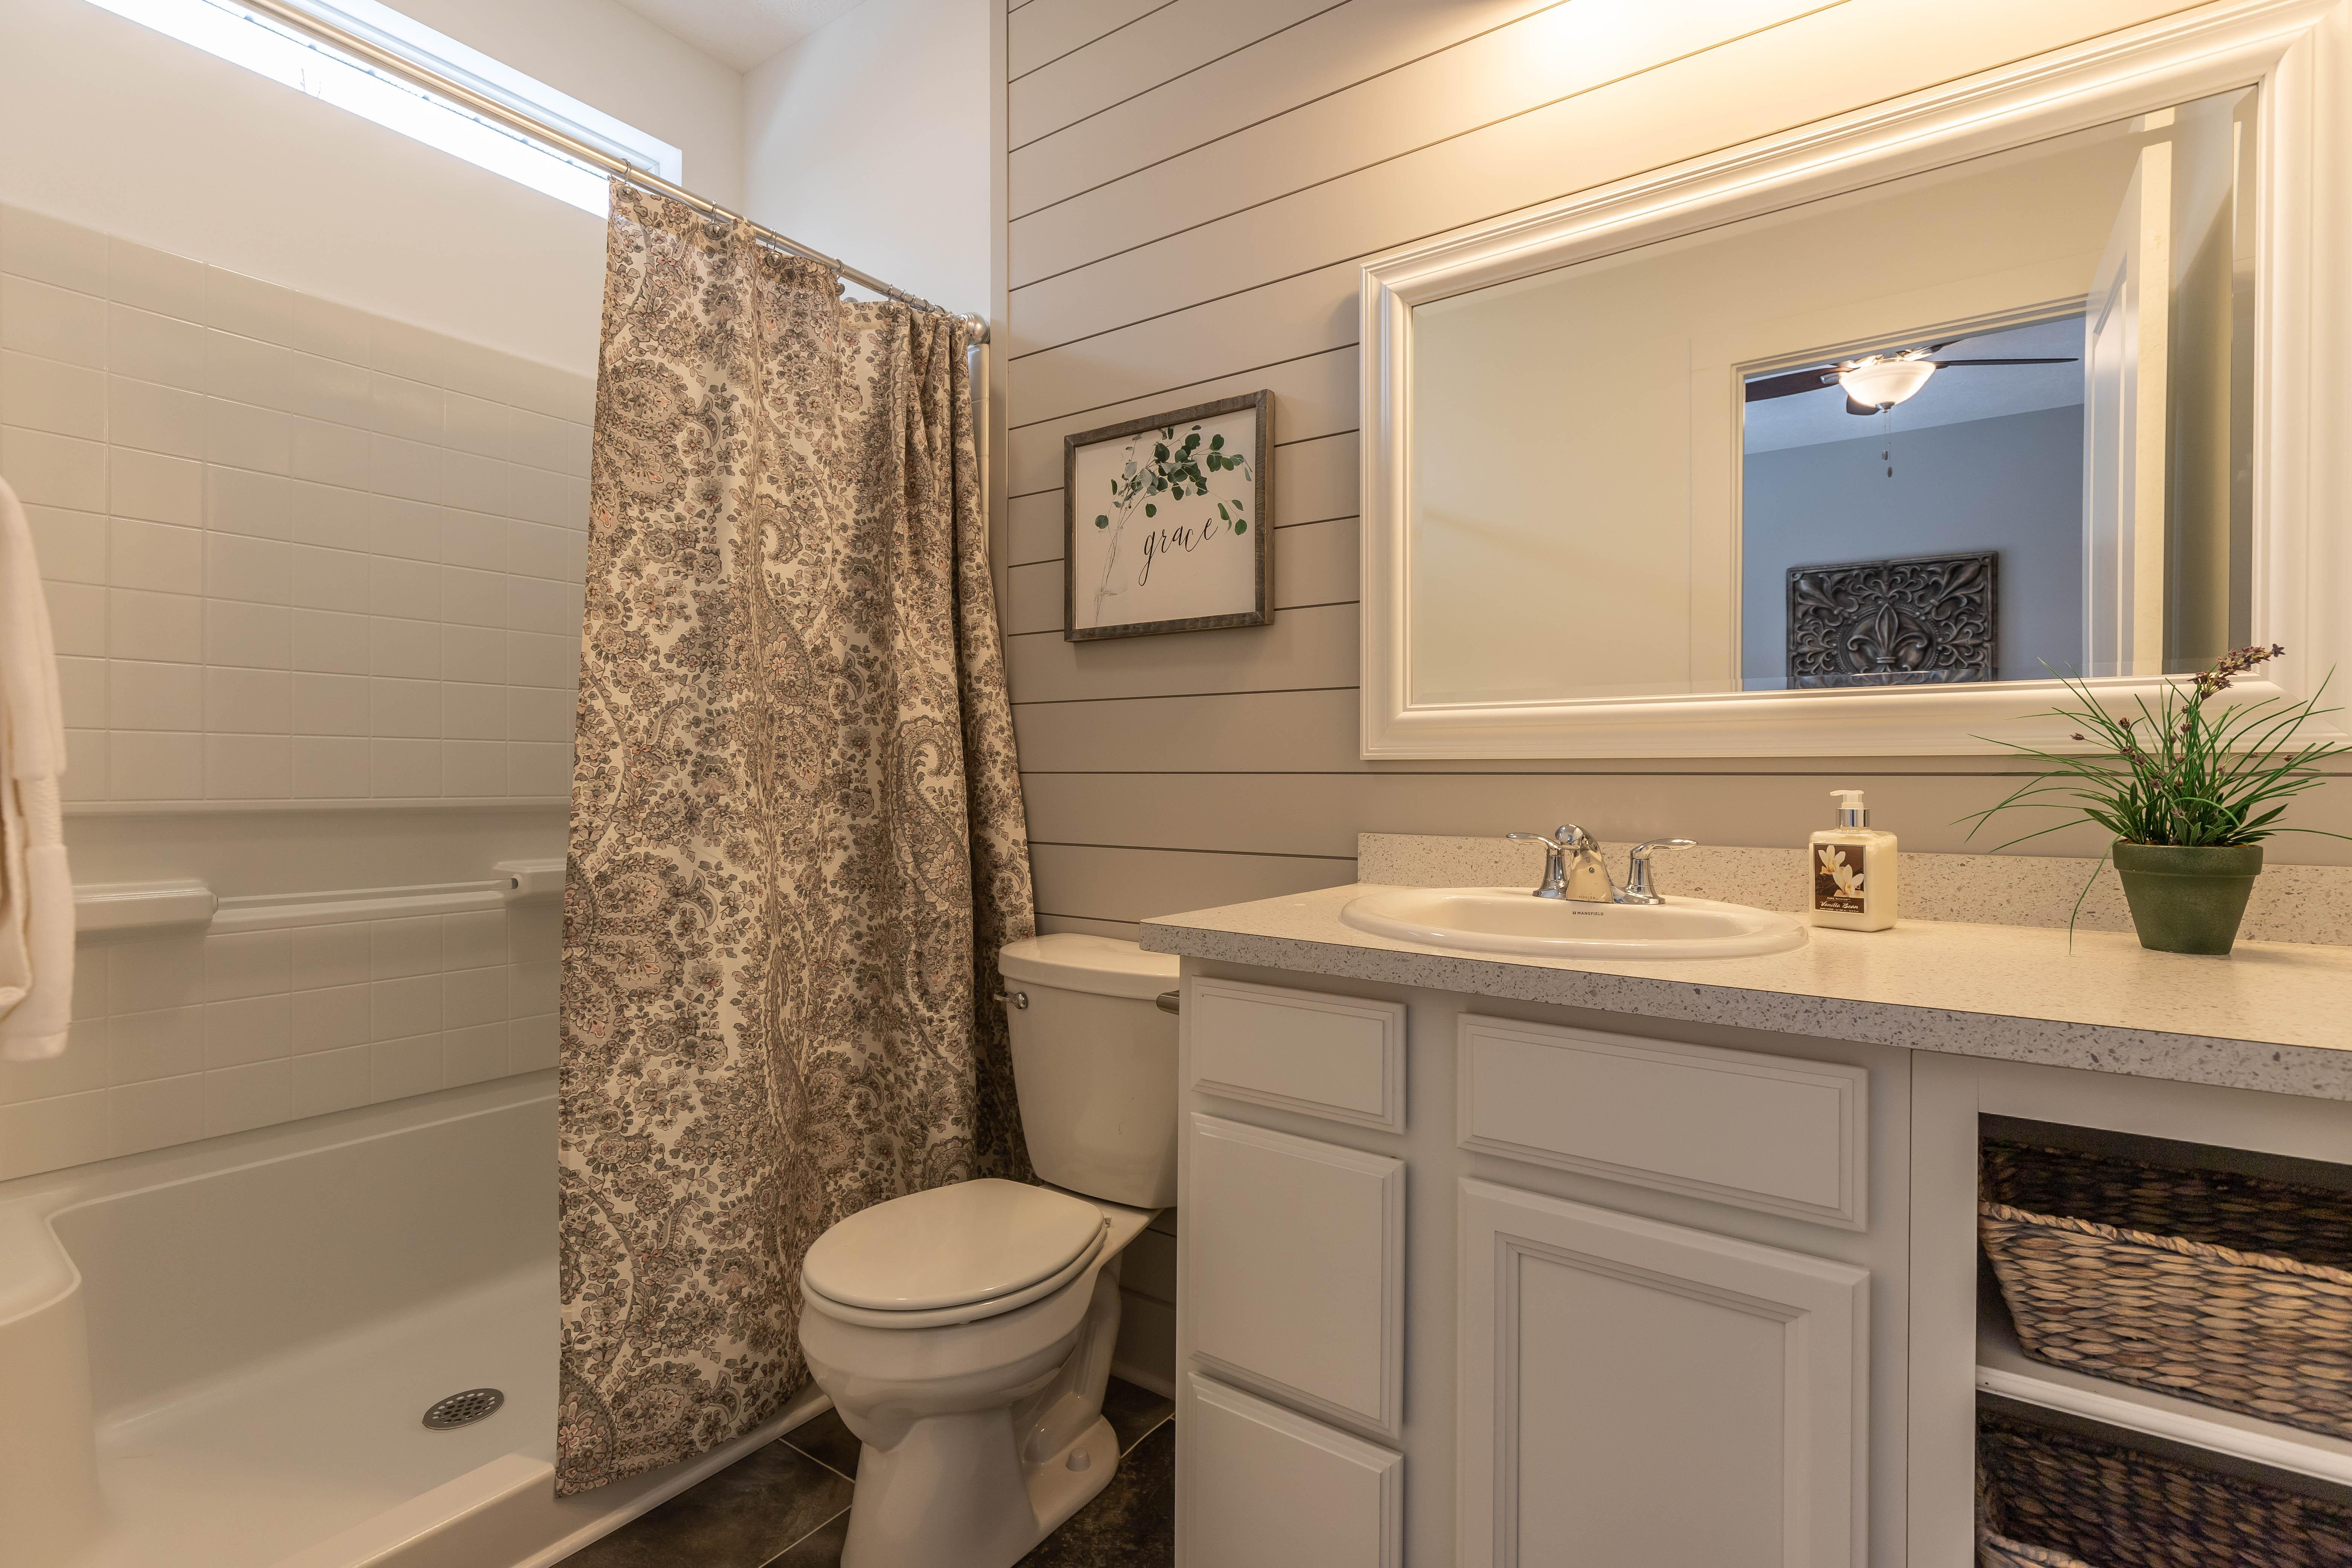 Bathroom featured in the Taylor By CVE Homes in Jackson, MI